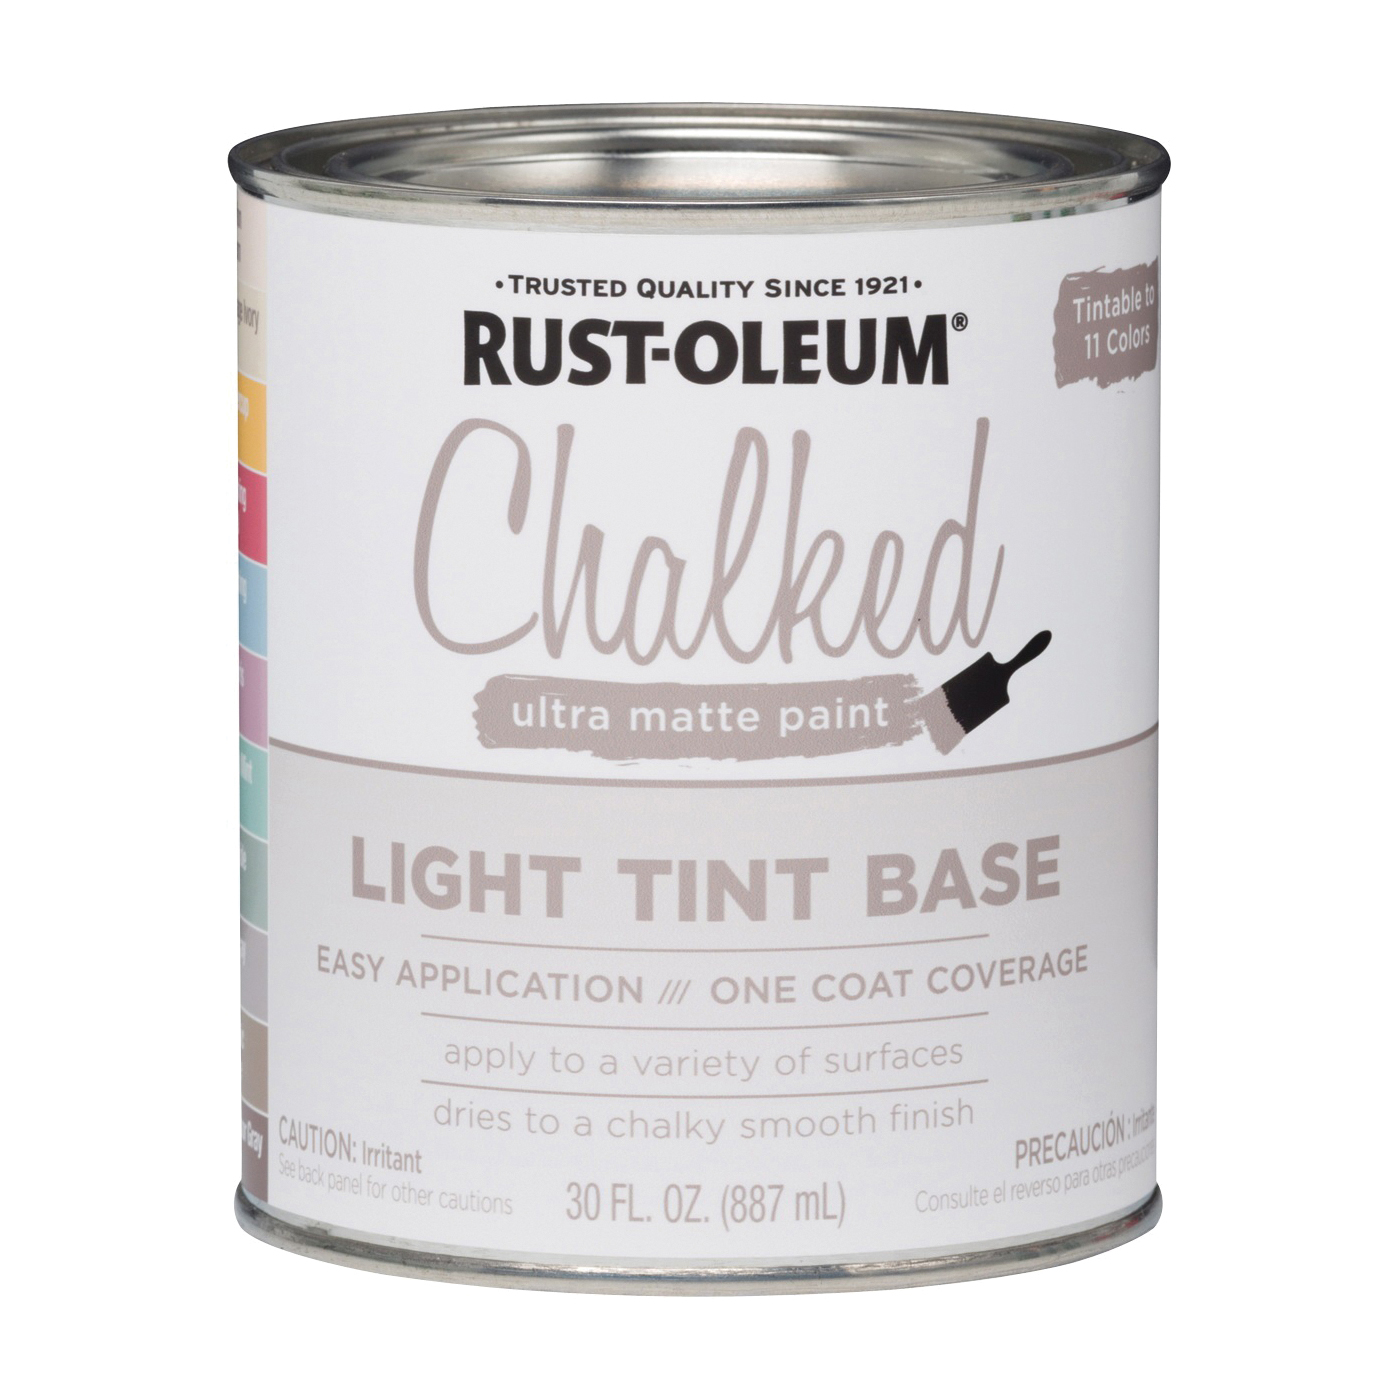 Picture of RUST-OLEUM Chalked 287688 Chalky Paint, Chalked/Ultra Matte, 30 oz, Pint